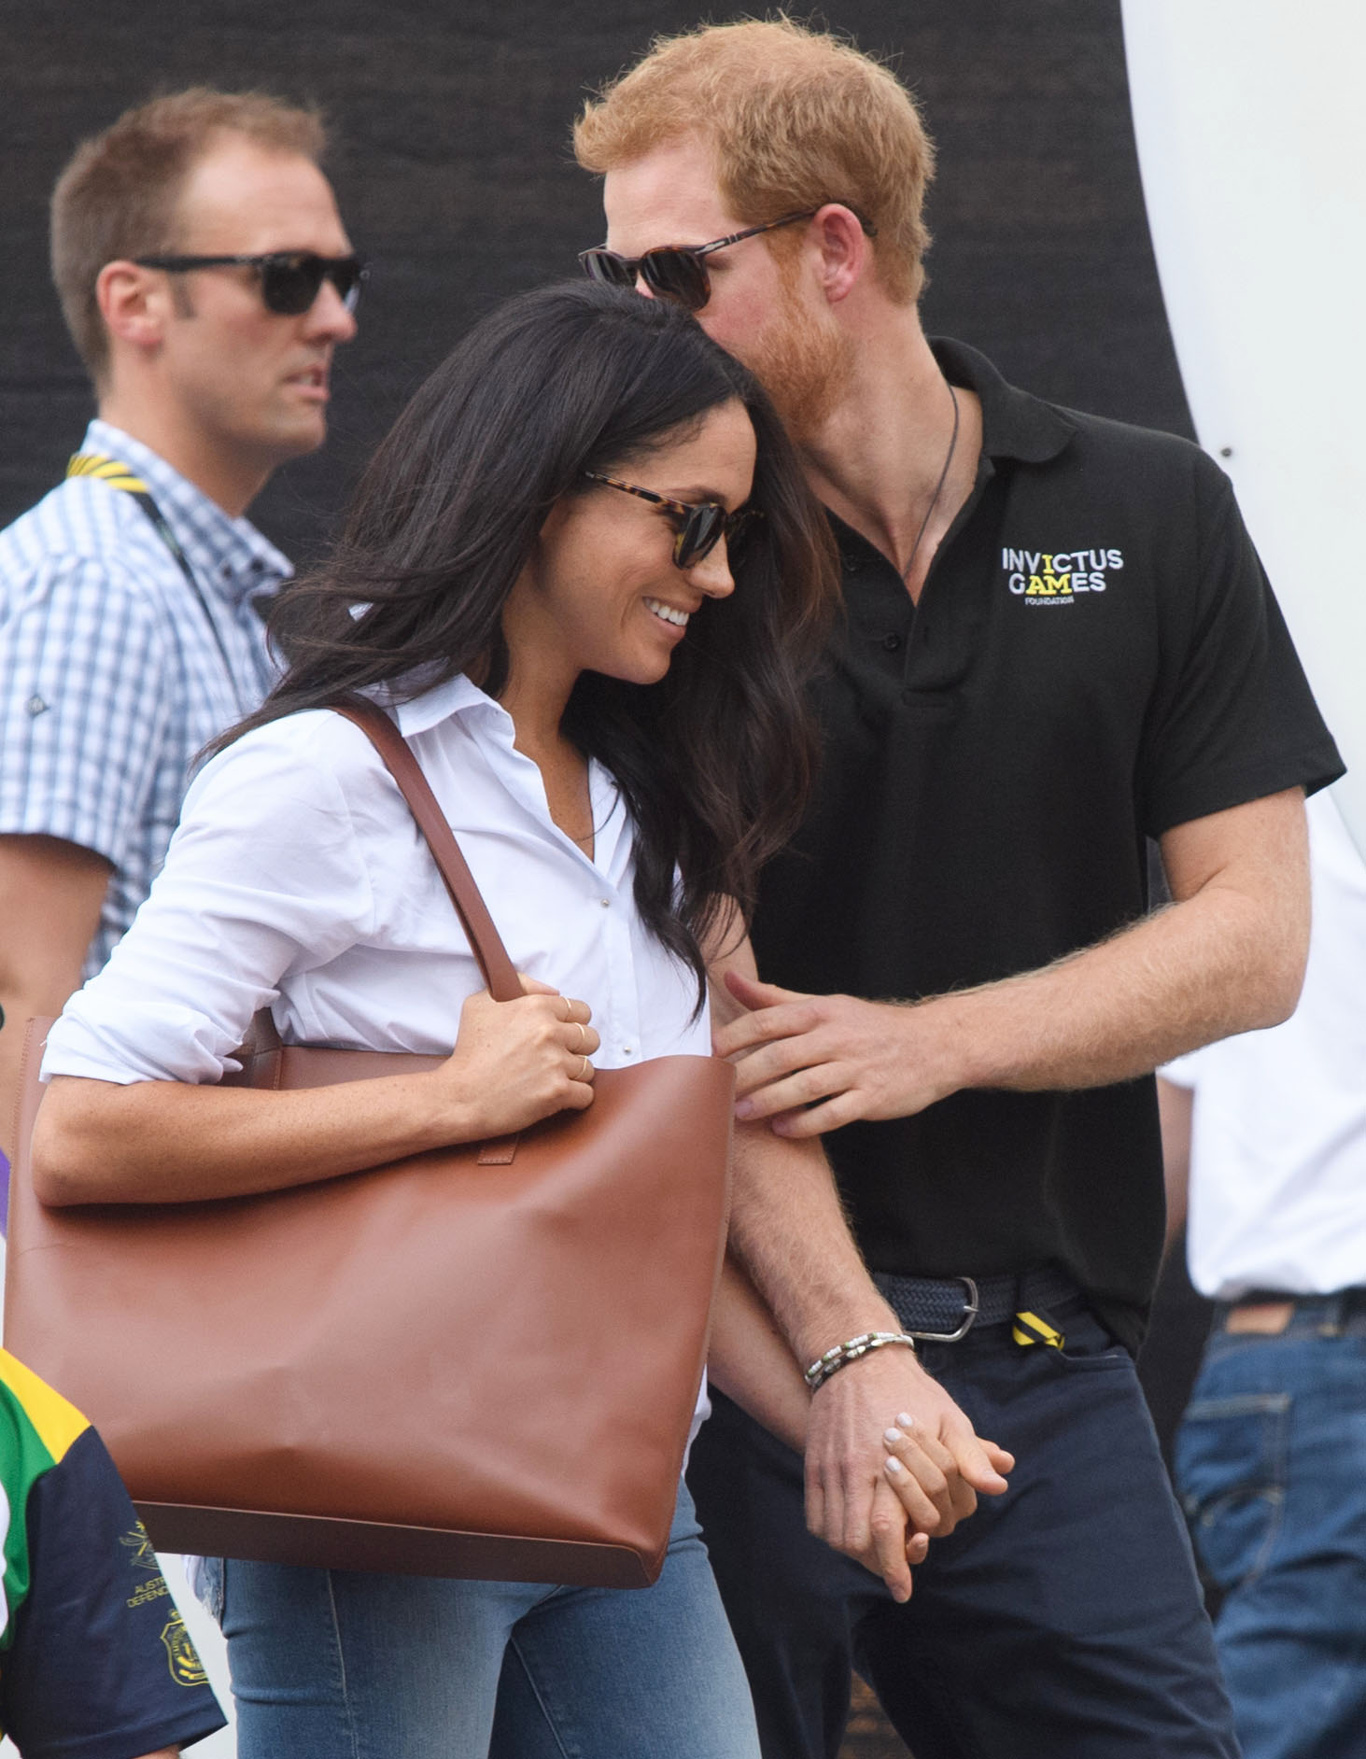 Meghan Markle and Prince HarryInvictus Games, Toronto, Canada - 25 Sep 2017